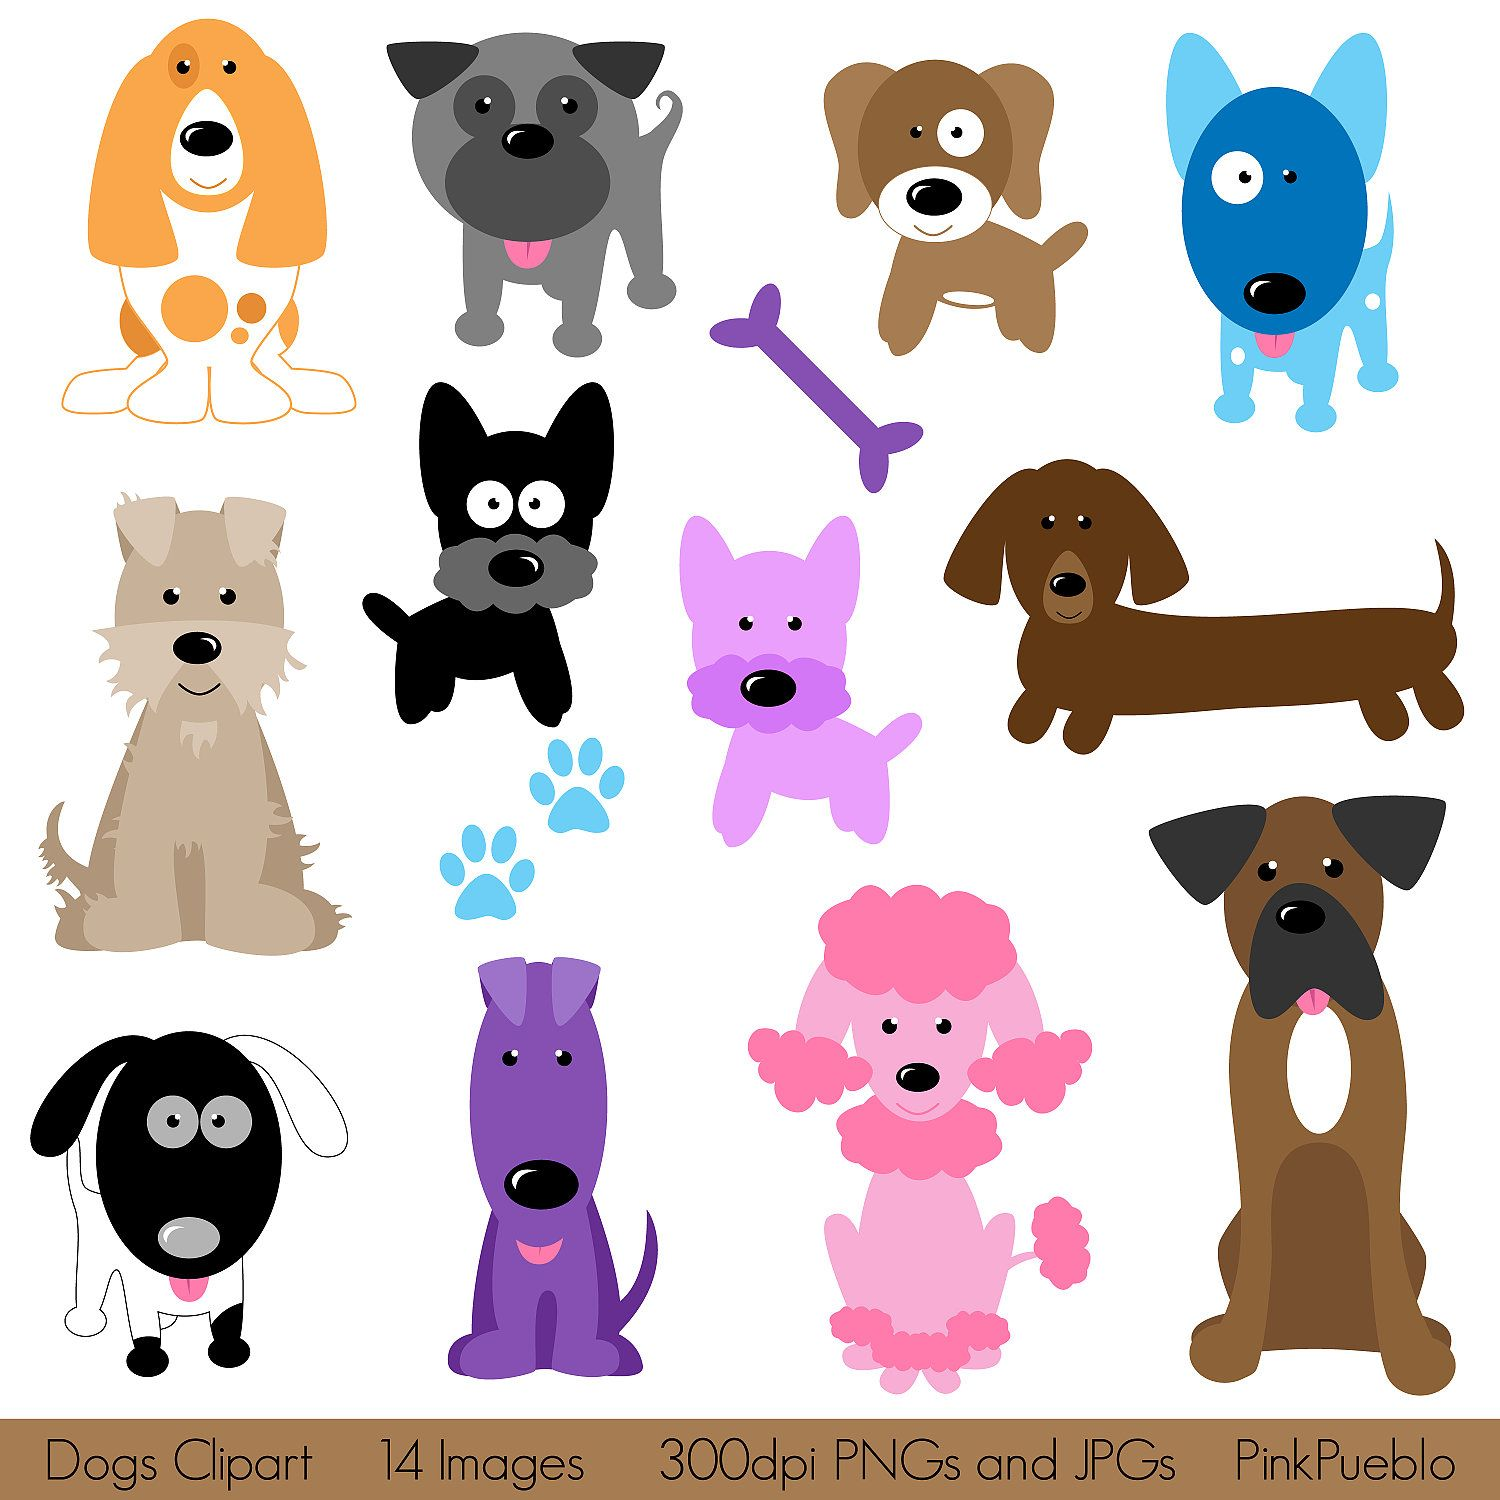 dogs clipart clip art puppy clipart clip art commercial and personal use 6 00 via etsy  [ 1500 x 1500 Pixel ]